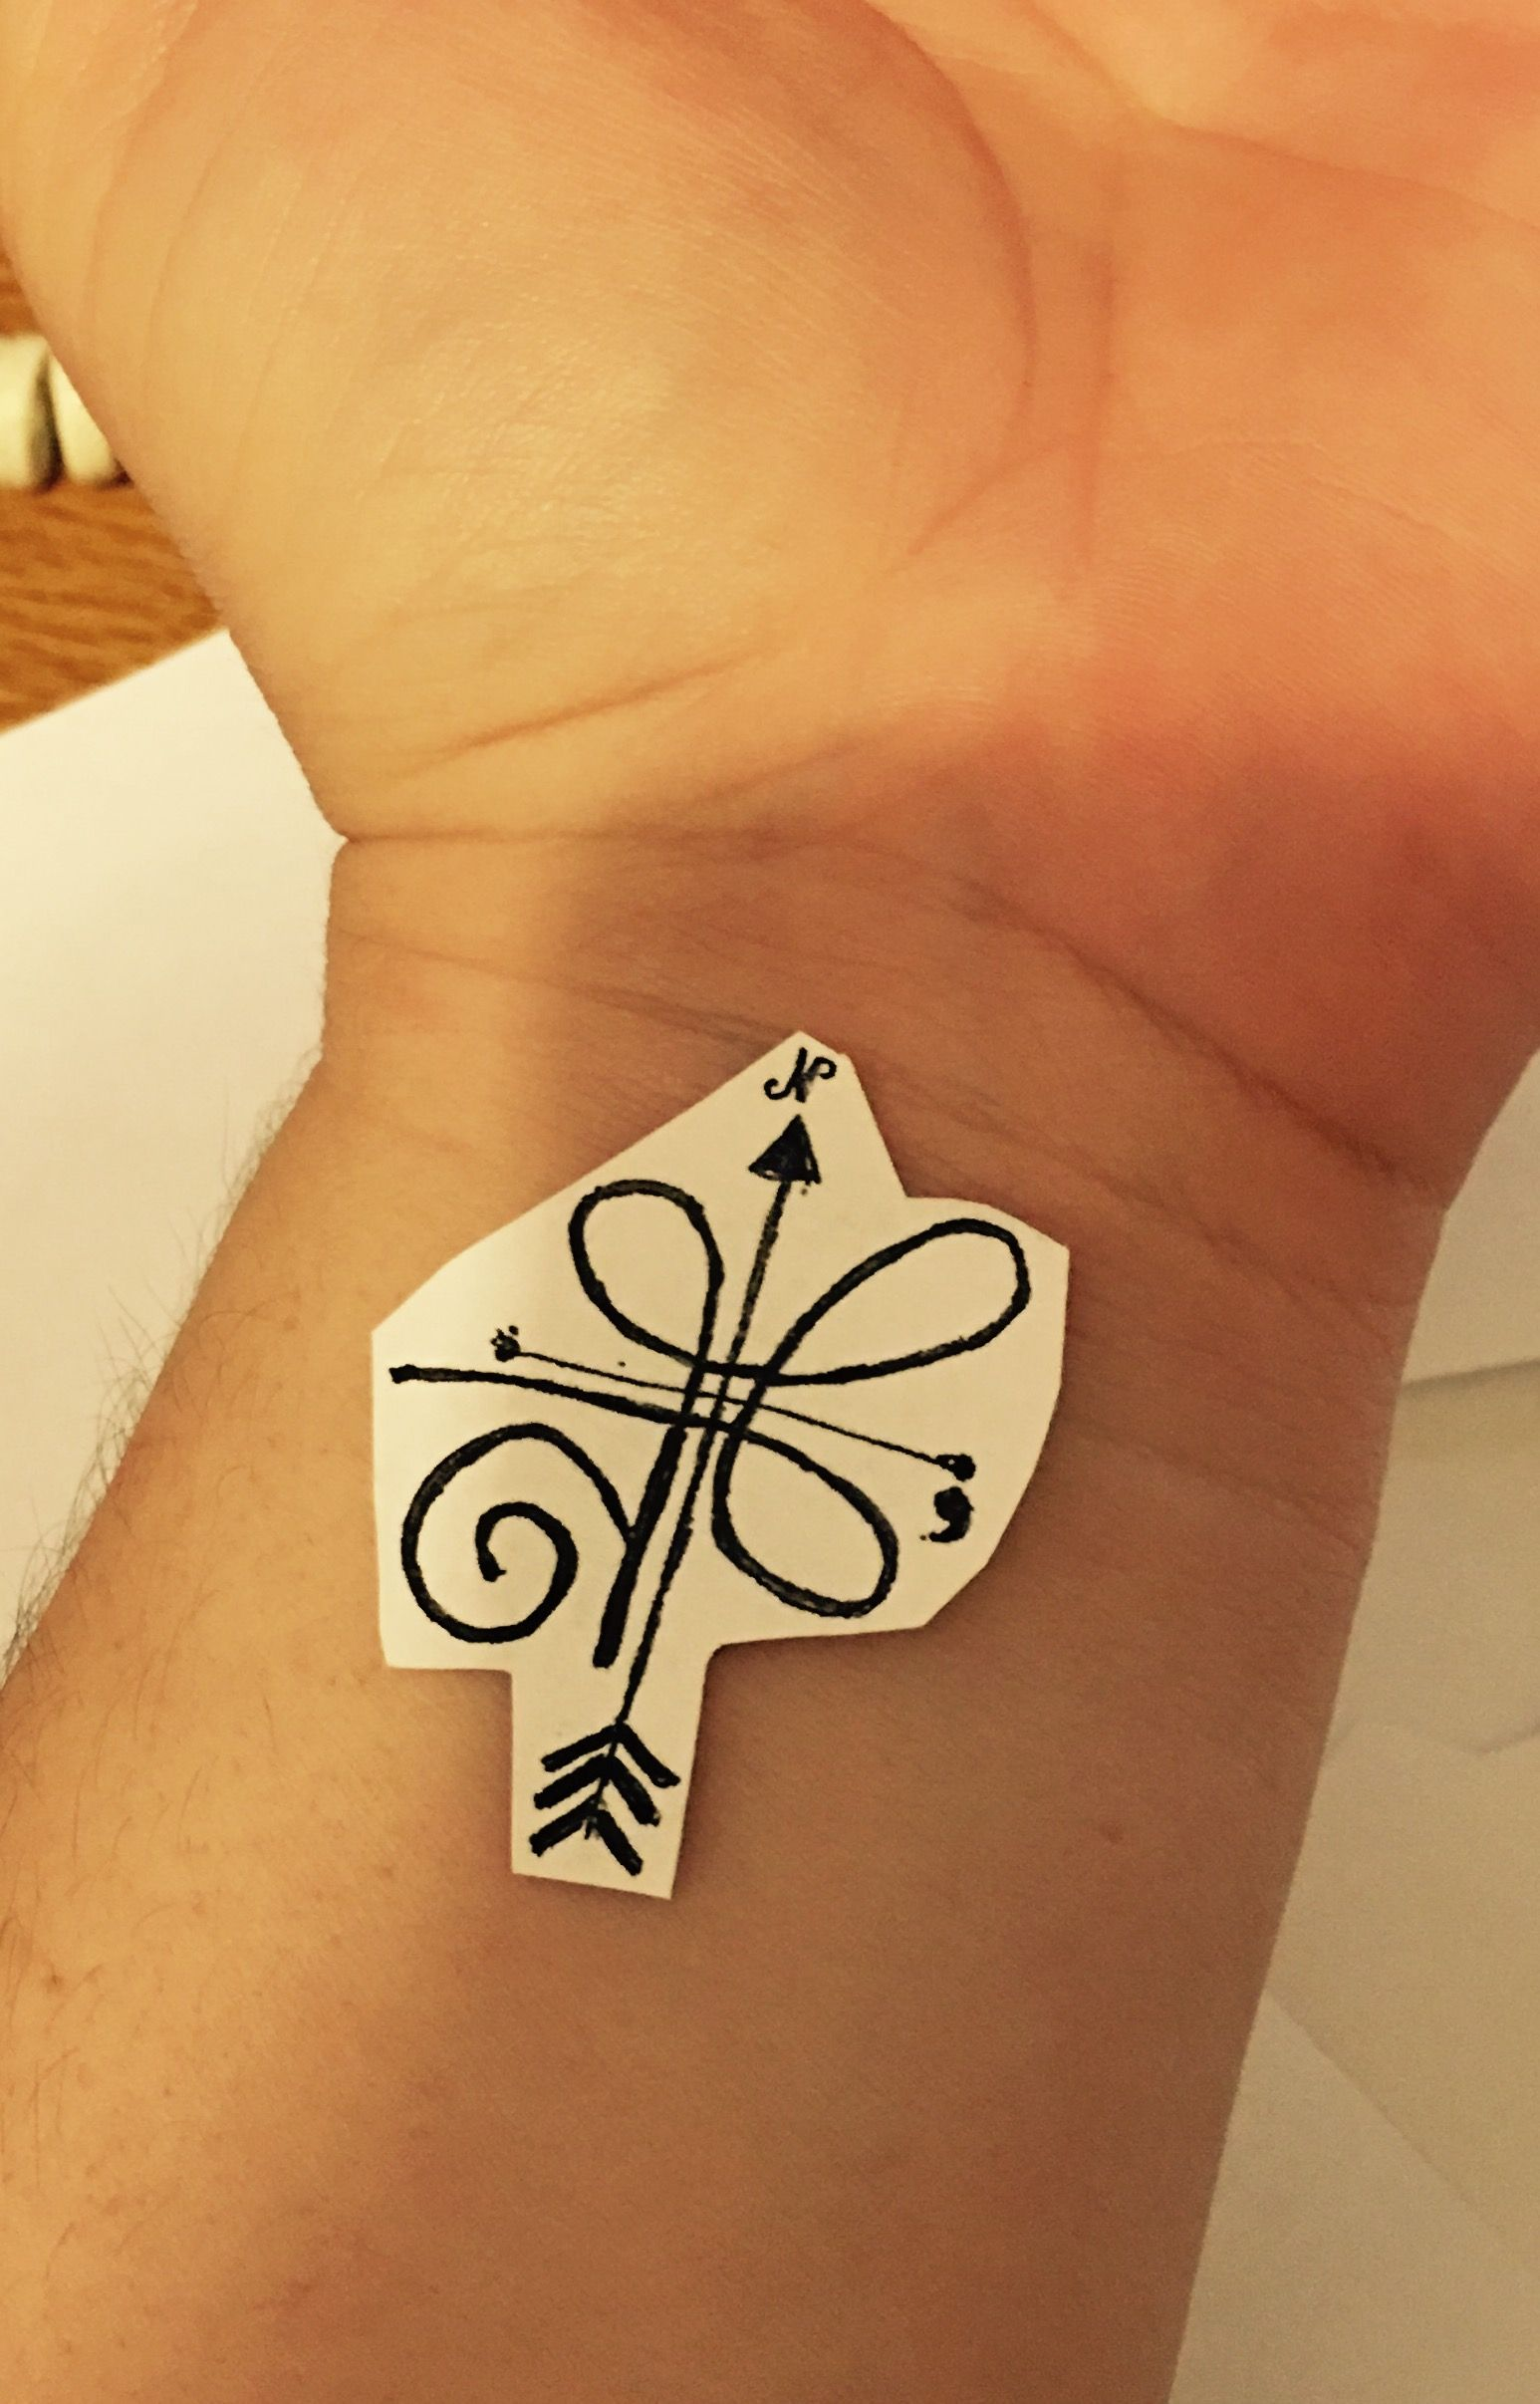 Small wrist tattoos design ideas to make you jealous ecstasycoffee - Biggest Tatto Gallery The Celtic Design Is A Symbol For Strength And The Arrows From The Compass That Always Guide You To Go Ahead And Keep Going Then